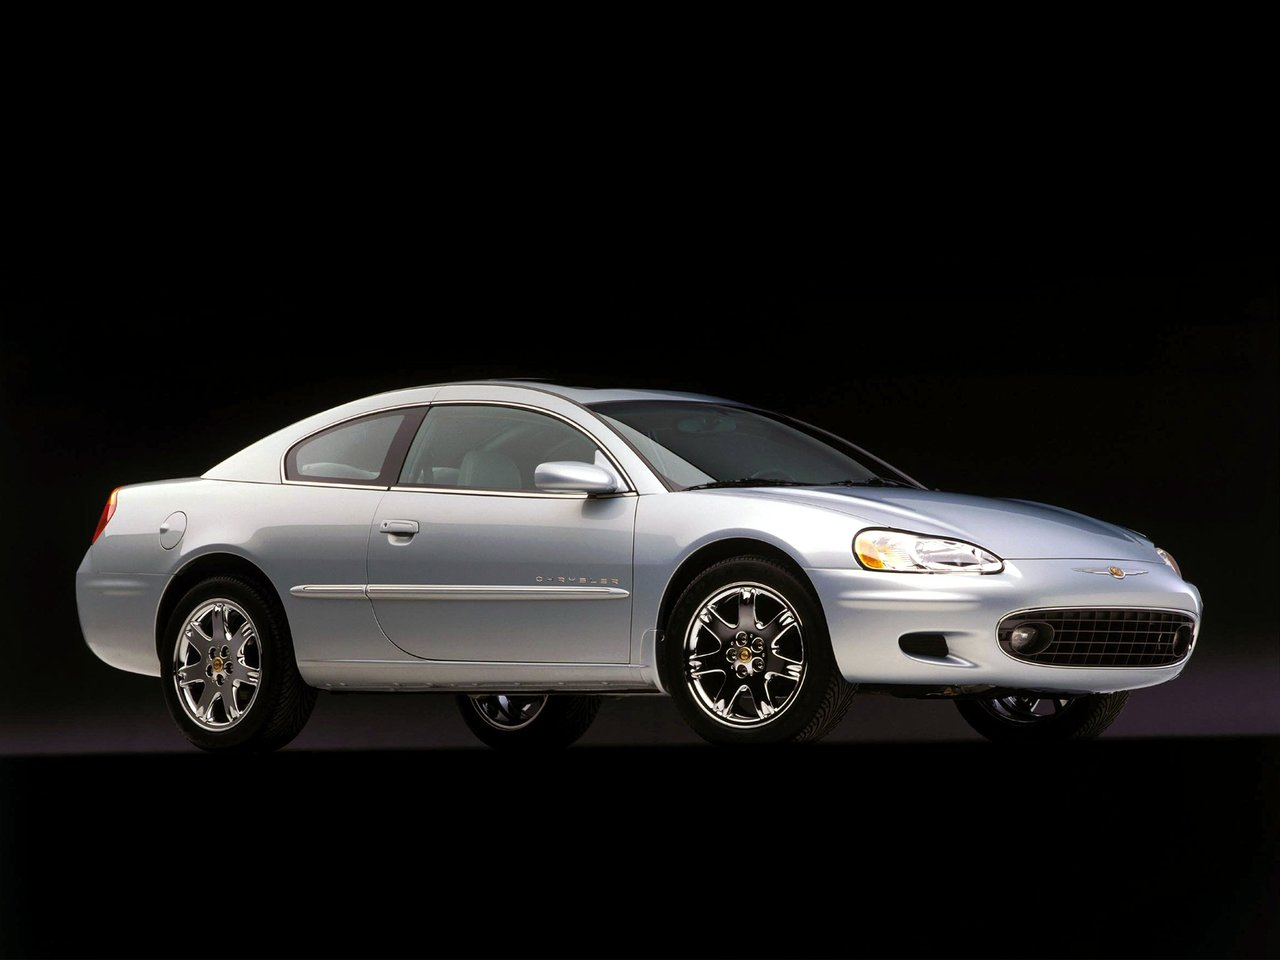 Автомобиль Chrysler Sebring